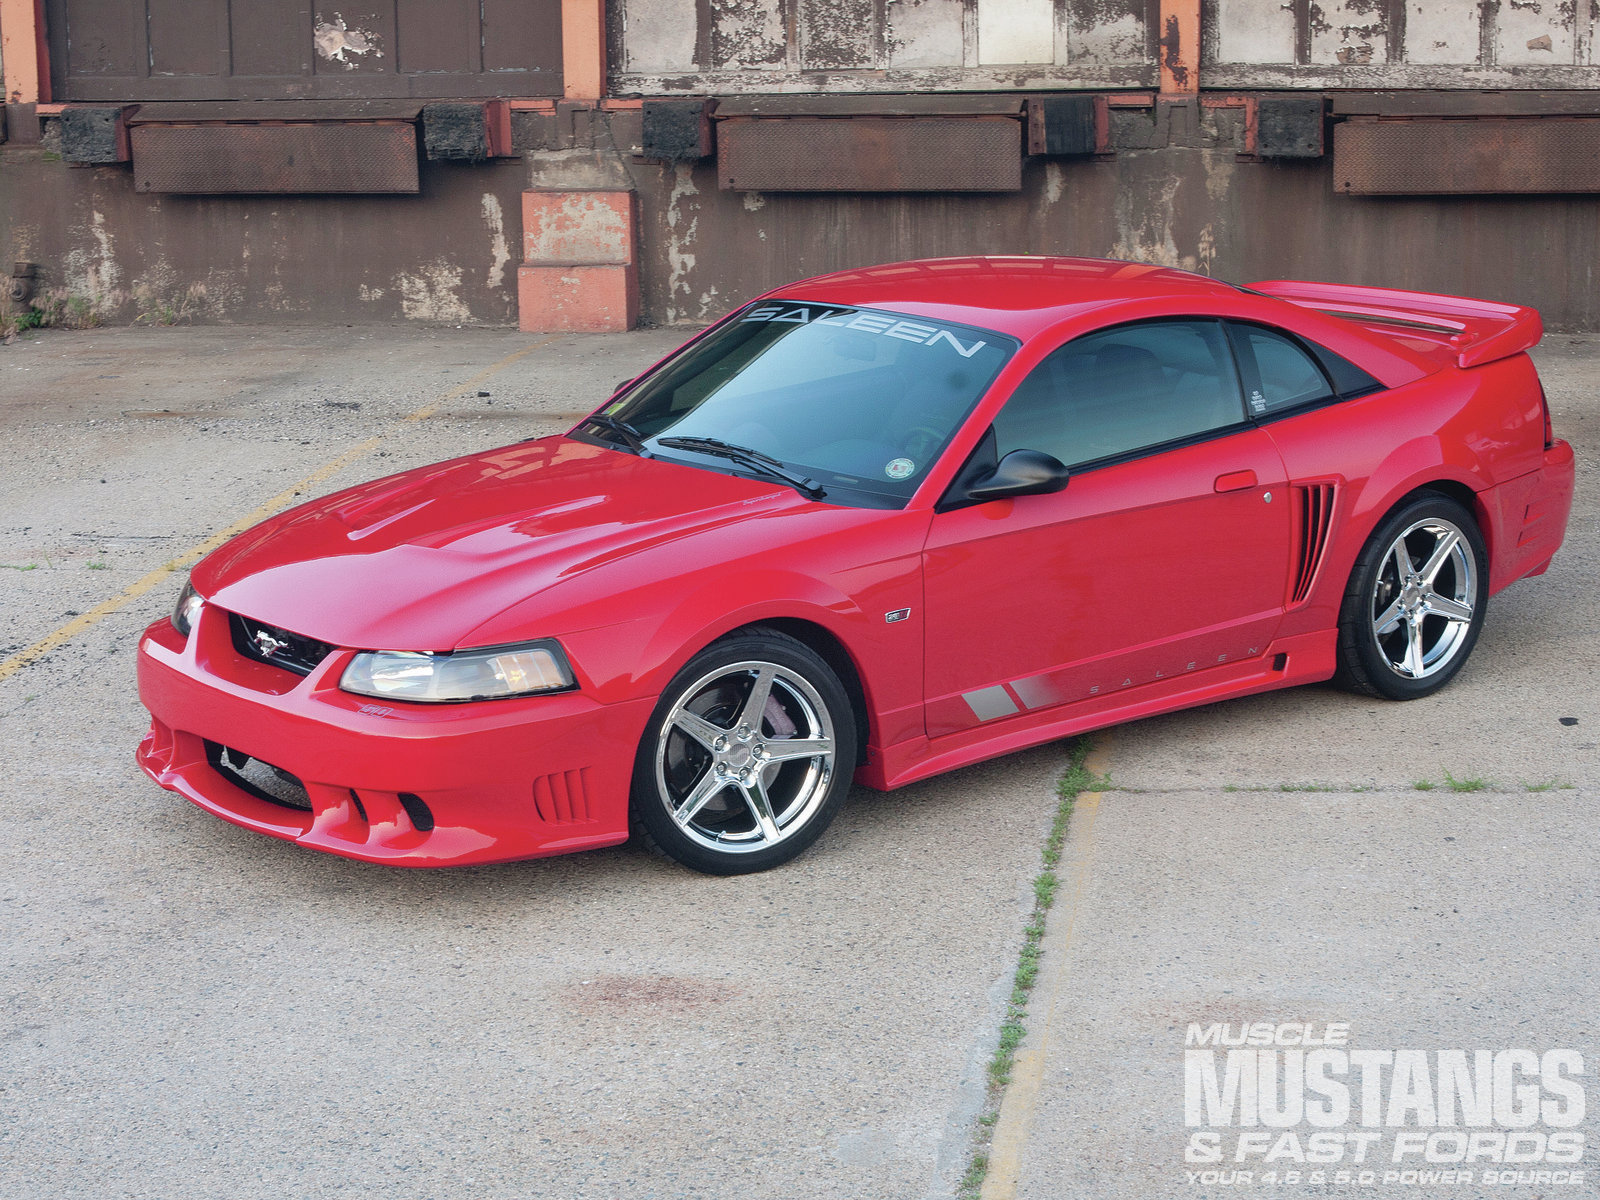 3dtuning of mustang saleen s281 coupe 2000. Black Bedroom Furniture Sets. Home Design Ideas